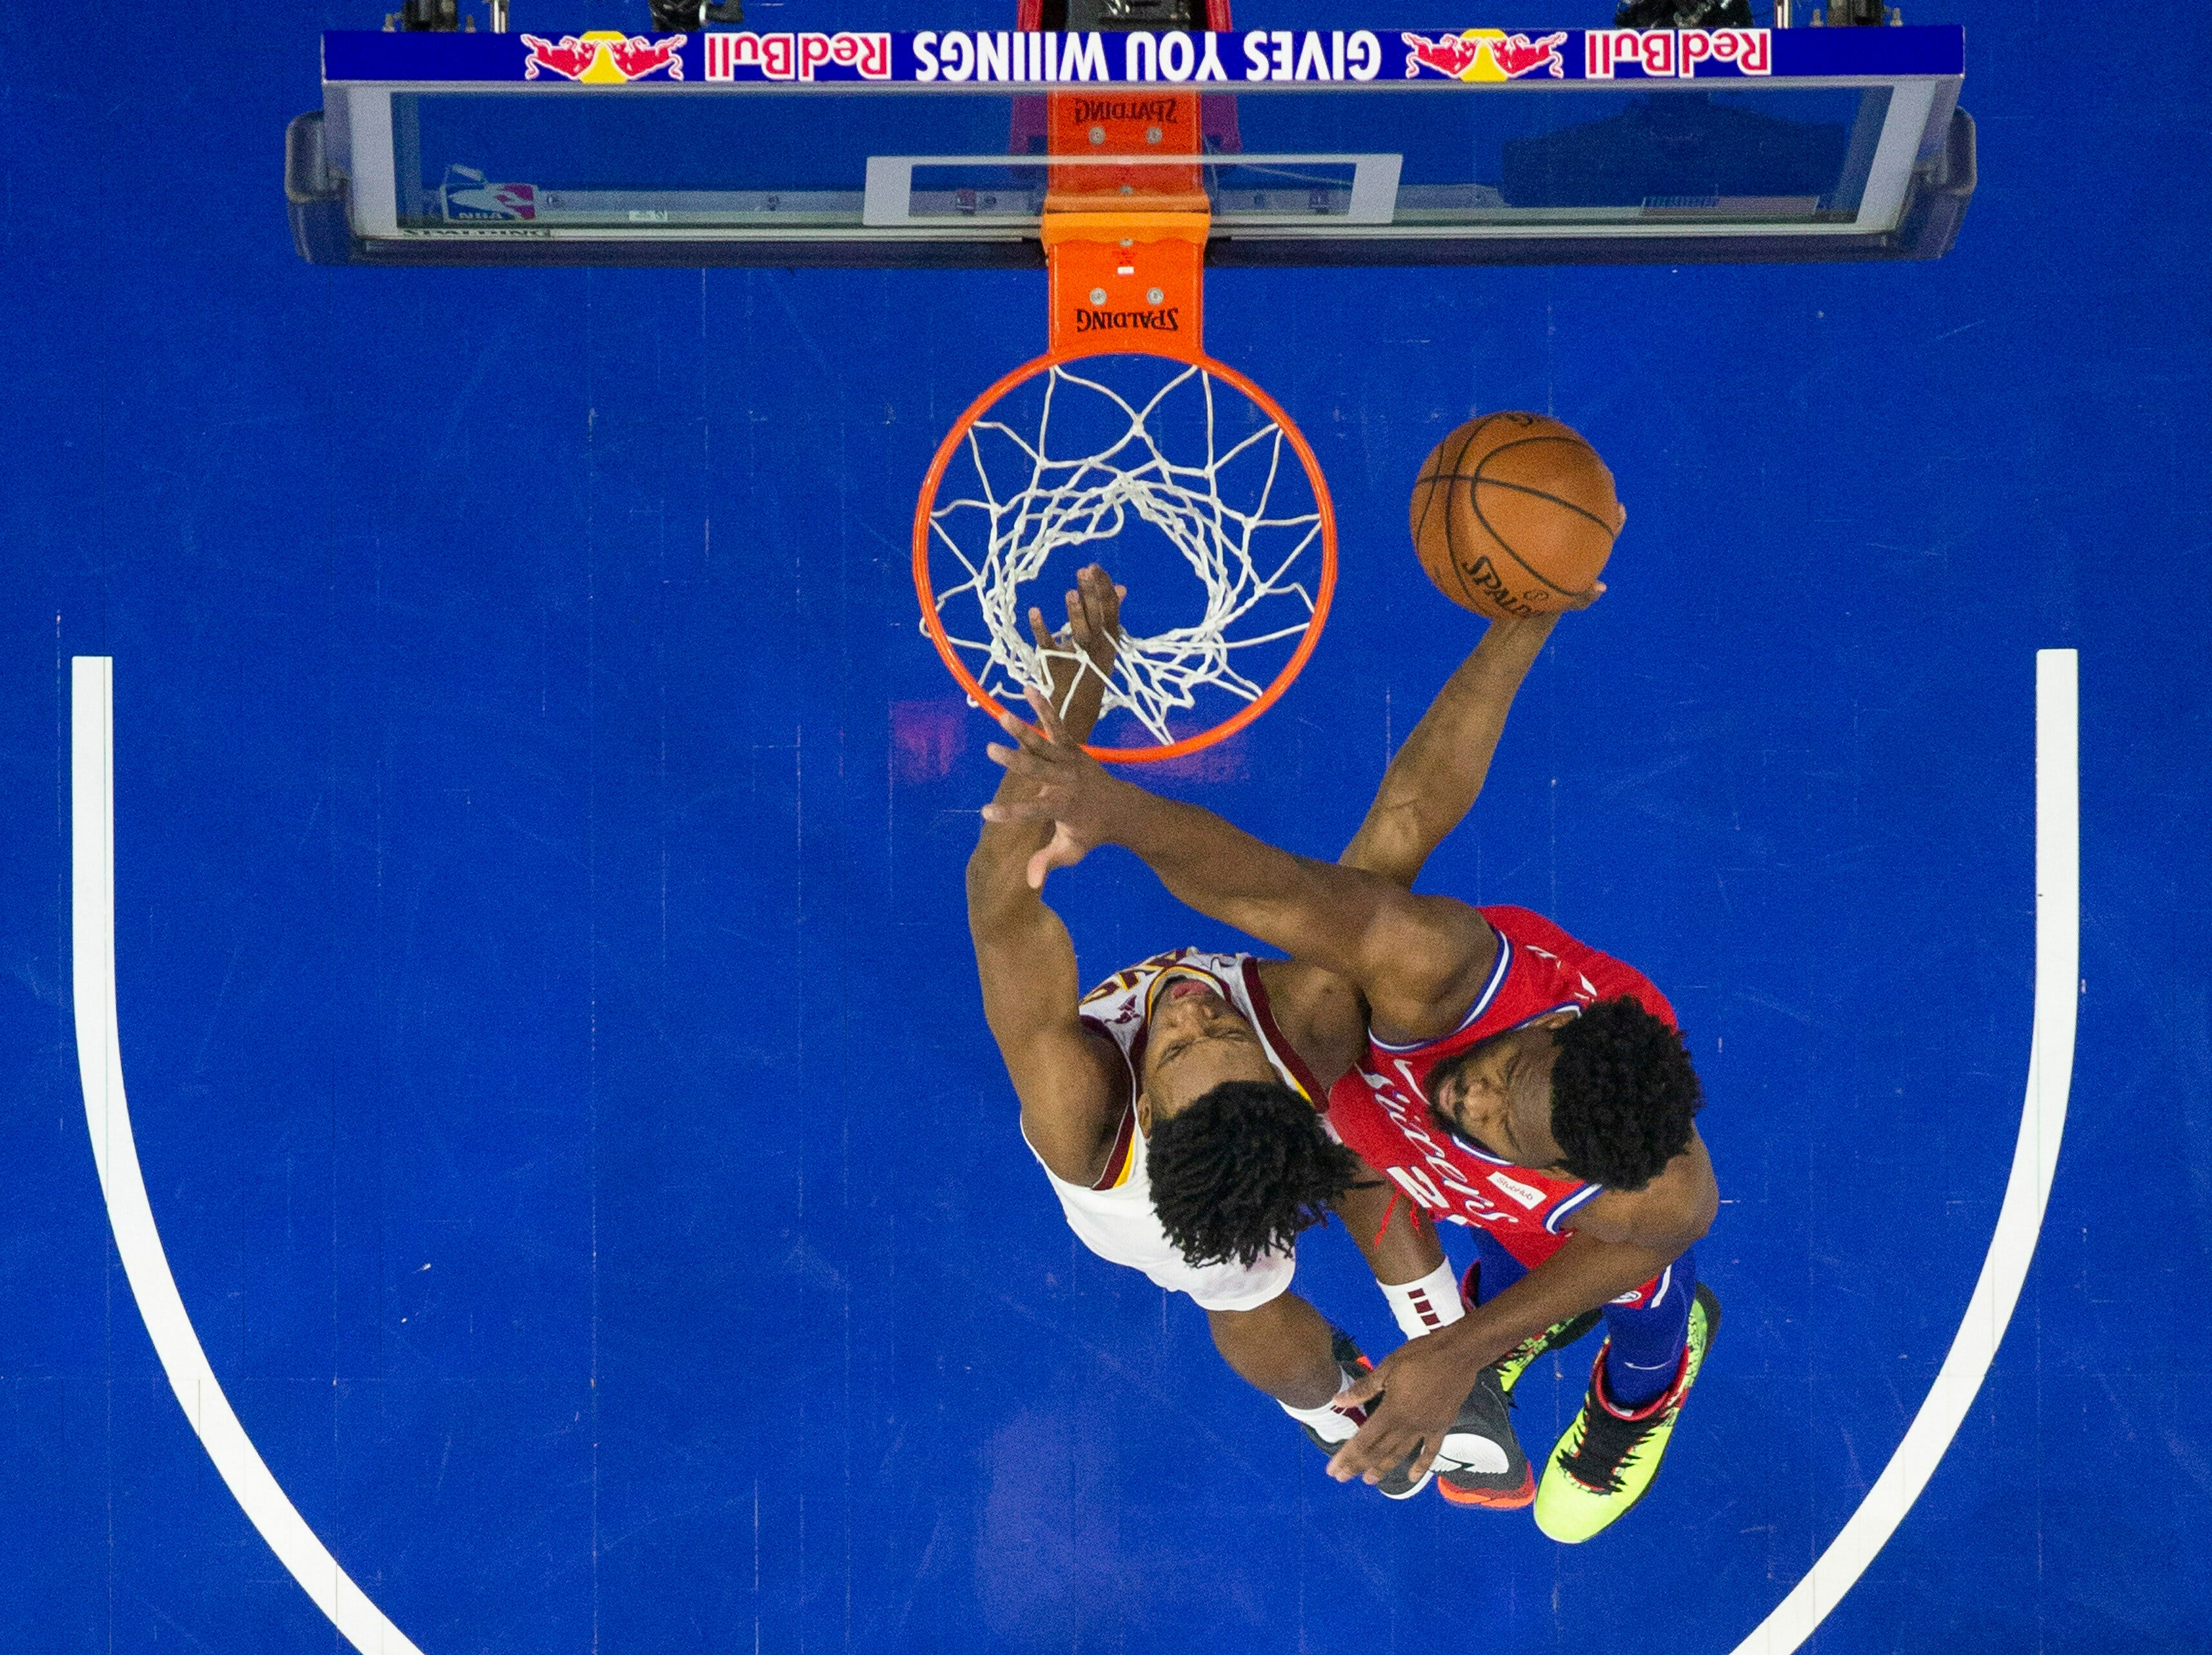 Cleveland Cavaliers' Collin Sexton, left, shoots against Philadelphia 76ers' Joel Embiid, right, of Cameroon, during the first half of an NBA basketball game, Tuesday, March 12, 2019, in Philadelphia. (AP Photo/Chris Szagola)